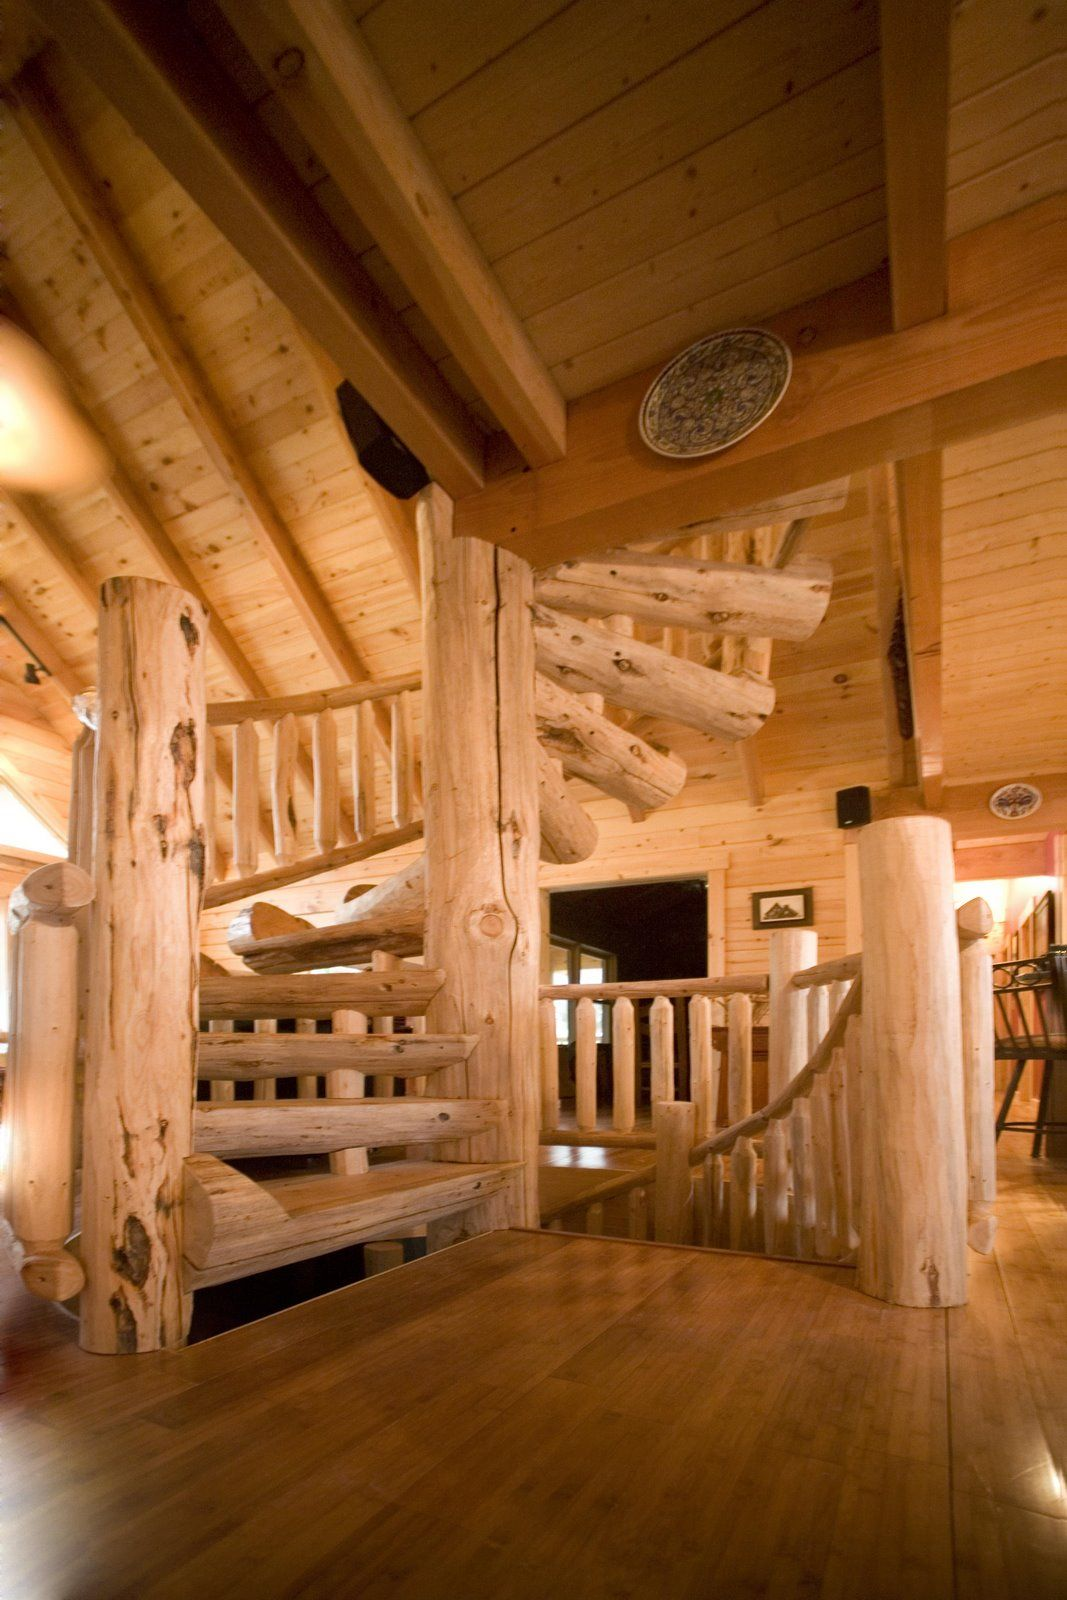 Custom Half Log Spiral Staircase With Hand Scraped Wood Railing To Loft  From Great Room,